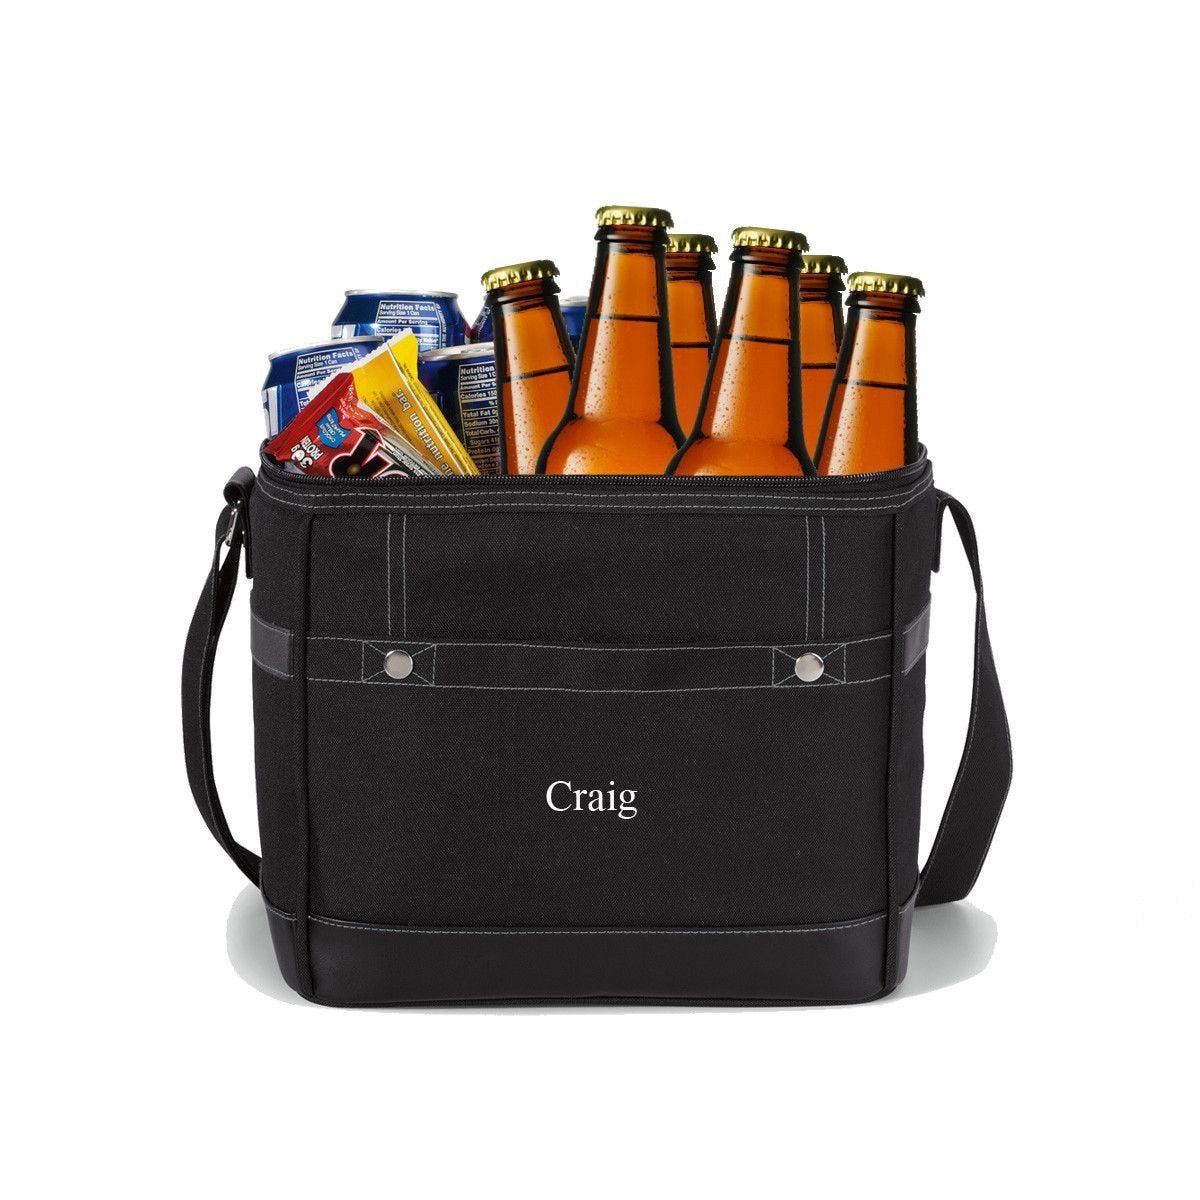 Personalized-Coolers-Insulated-Groomsmen-Holds-12-Pack